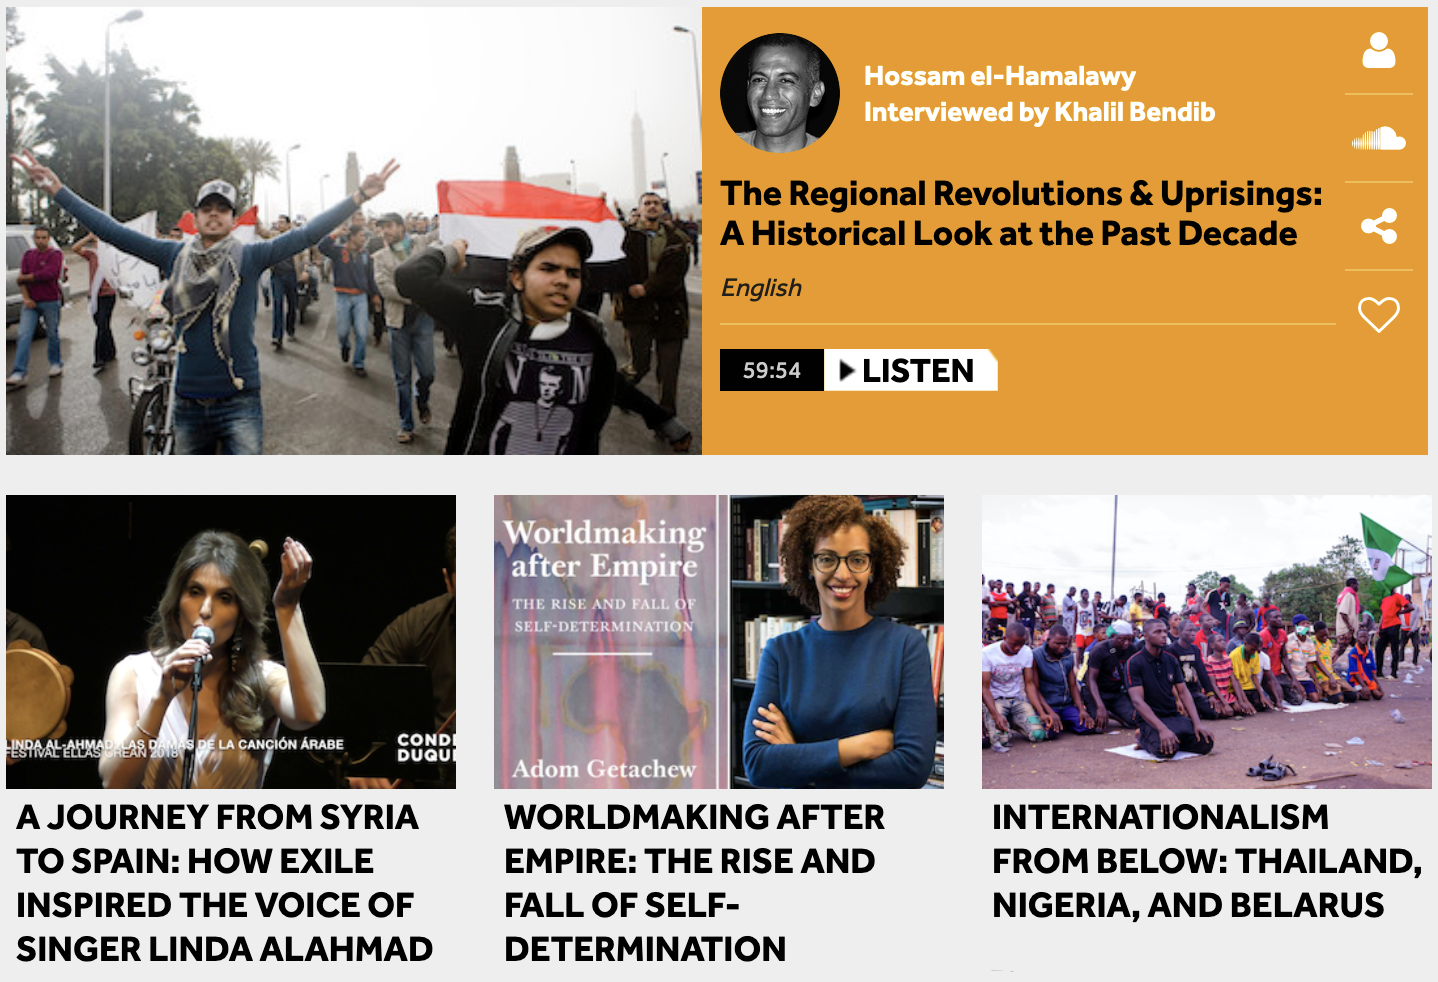 A screenshot of the Status website, featuring images of protests in the Arab Uprisings, Linda Alahmad performing a song, Adom Getachew and her new book, and prayers during the protests against police brutality in Nigeria